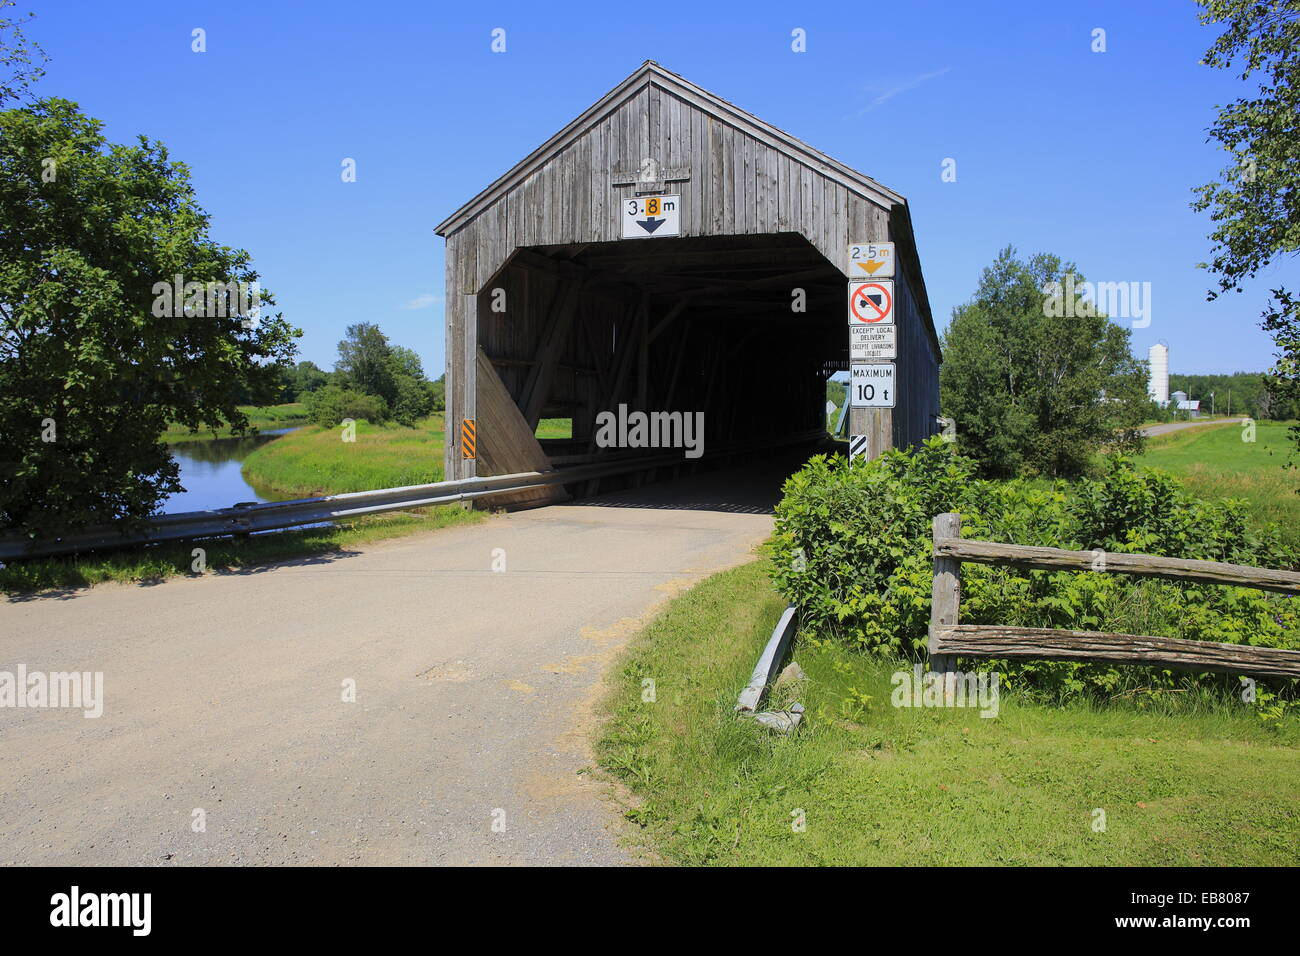 The Hasty Covered Bridge in Westmorland on the Petitcodiac River, New Brunswick, Canada - Stock Image